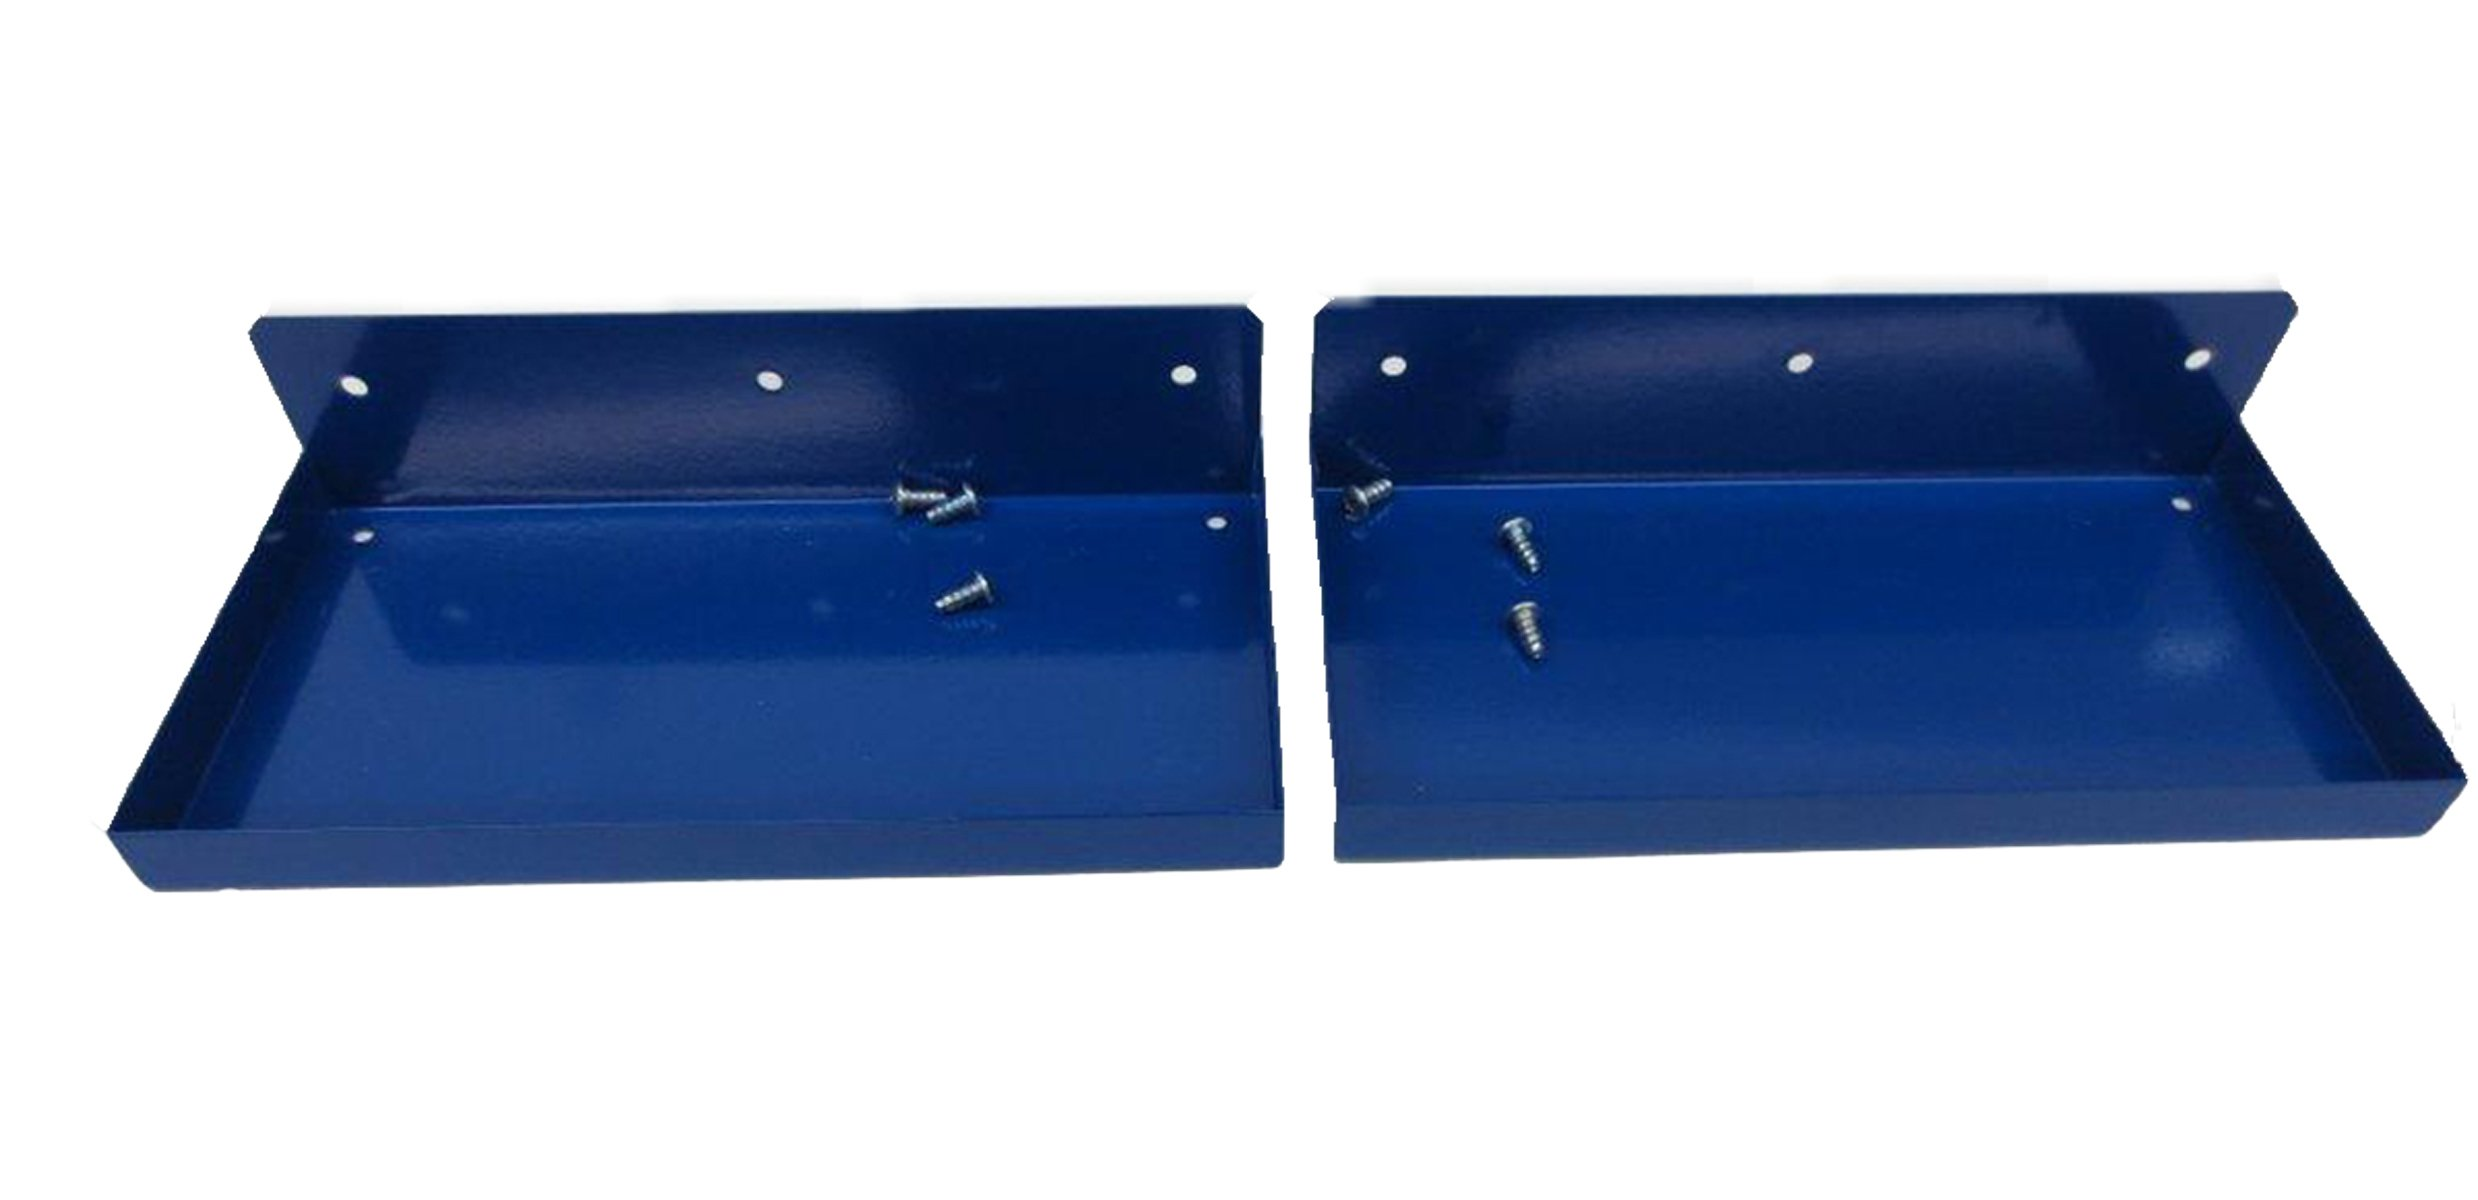 Triton Products 76126-2 DuraHook 12 Inch W x 6 Inch Deep Blue Epoxy Coated Steel Shelf for DuraBoard or 1/8 Inch and 1/4 Inch Pegboard, 2-Pack